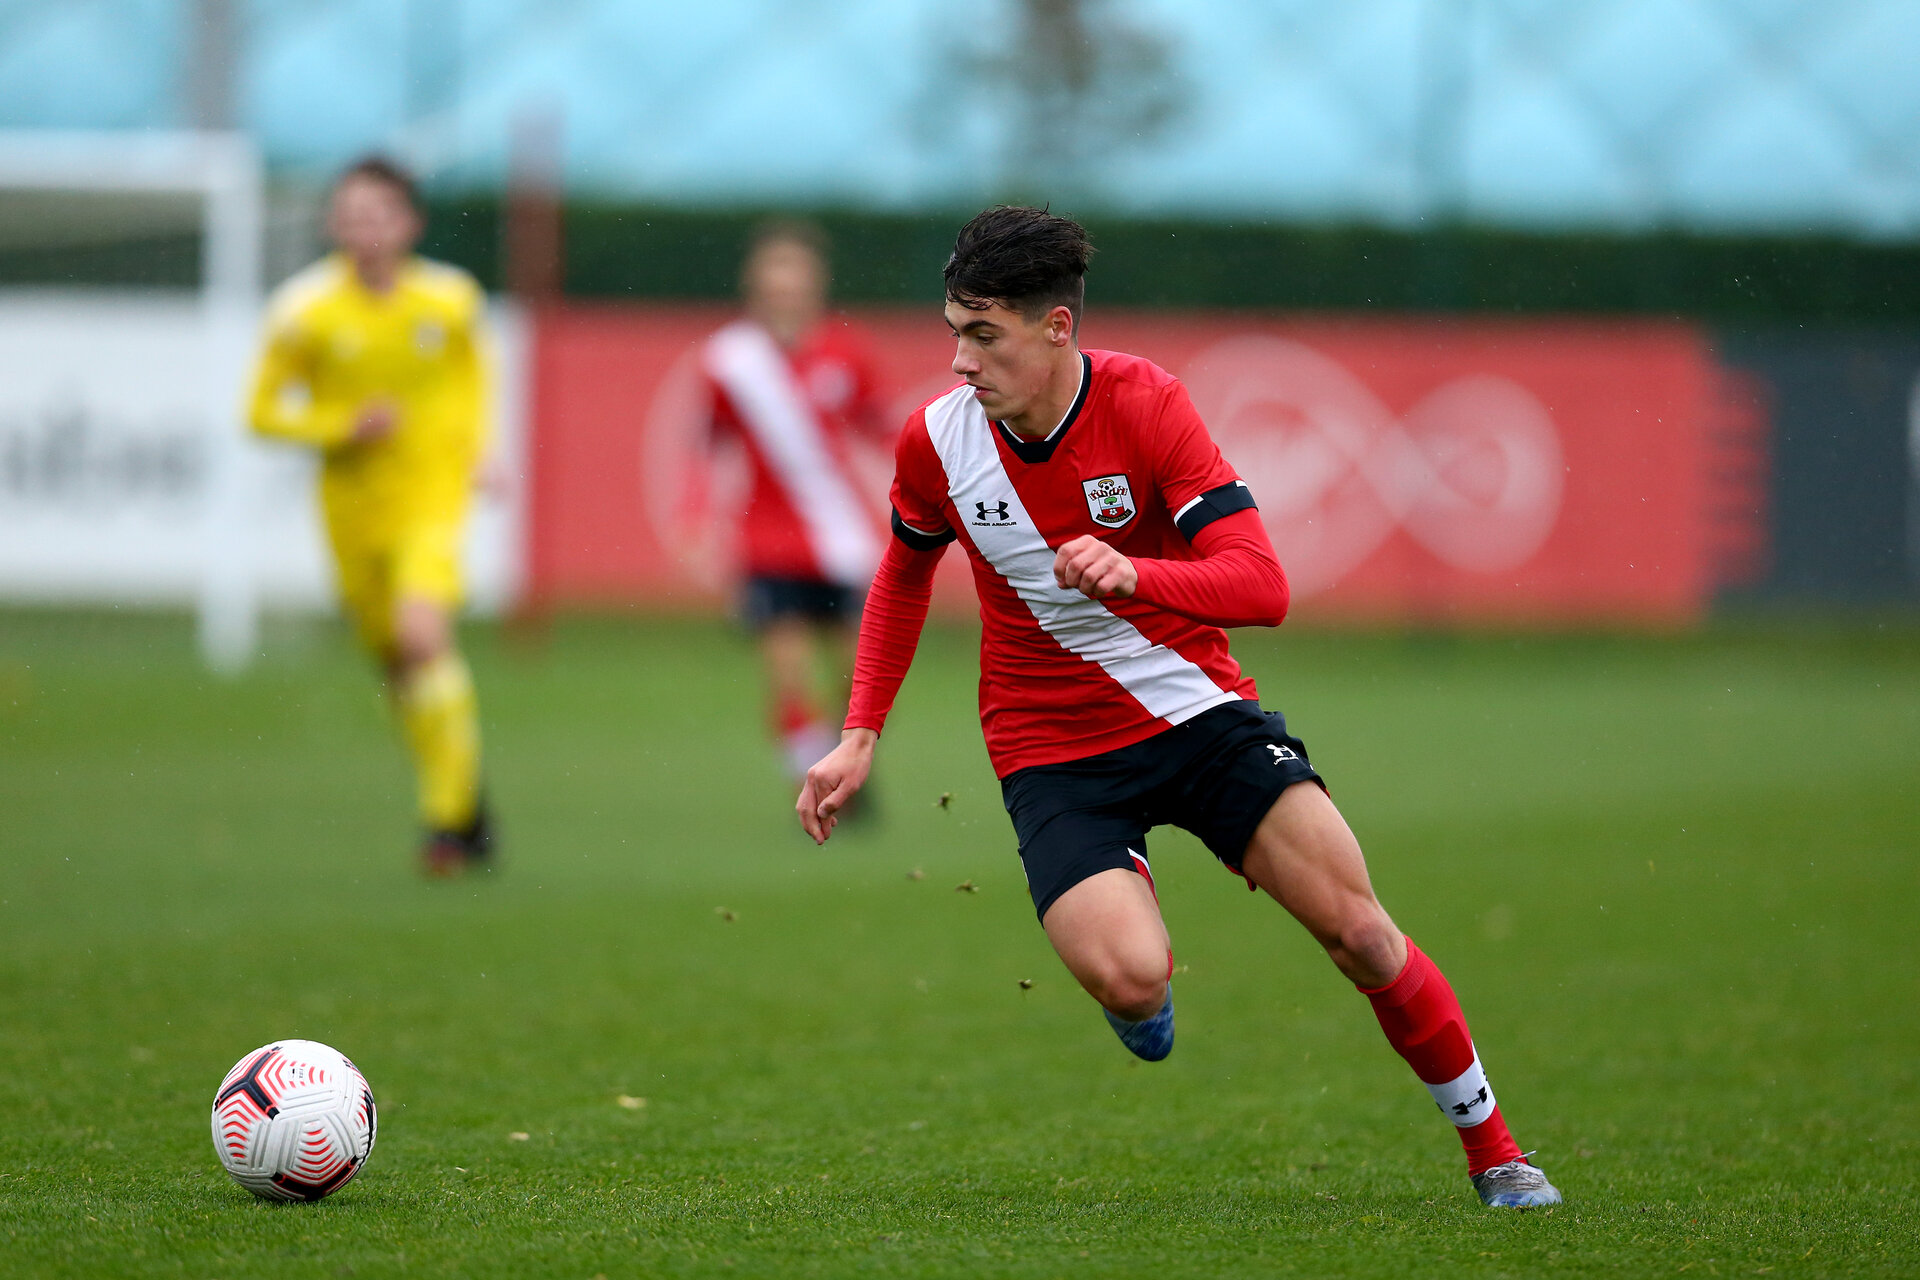 SOUTHAMPTON, ENGLAND - OCTOBER 31: Marco Rus of Southampton during the Premier League U18s match between Southampton U18s and Fulham FC at Staplewood Training Ground on October 31, 2020 in Southampton, England. (Photo by Isabelle Field/Southamtpon FC)